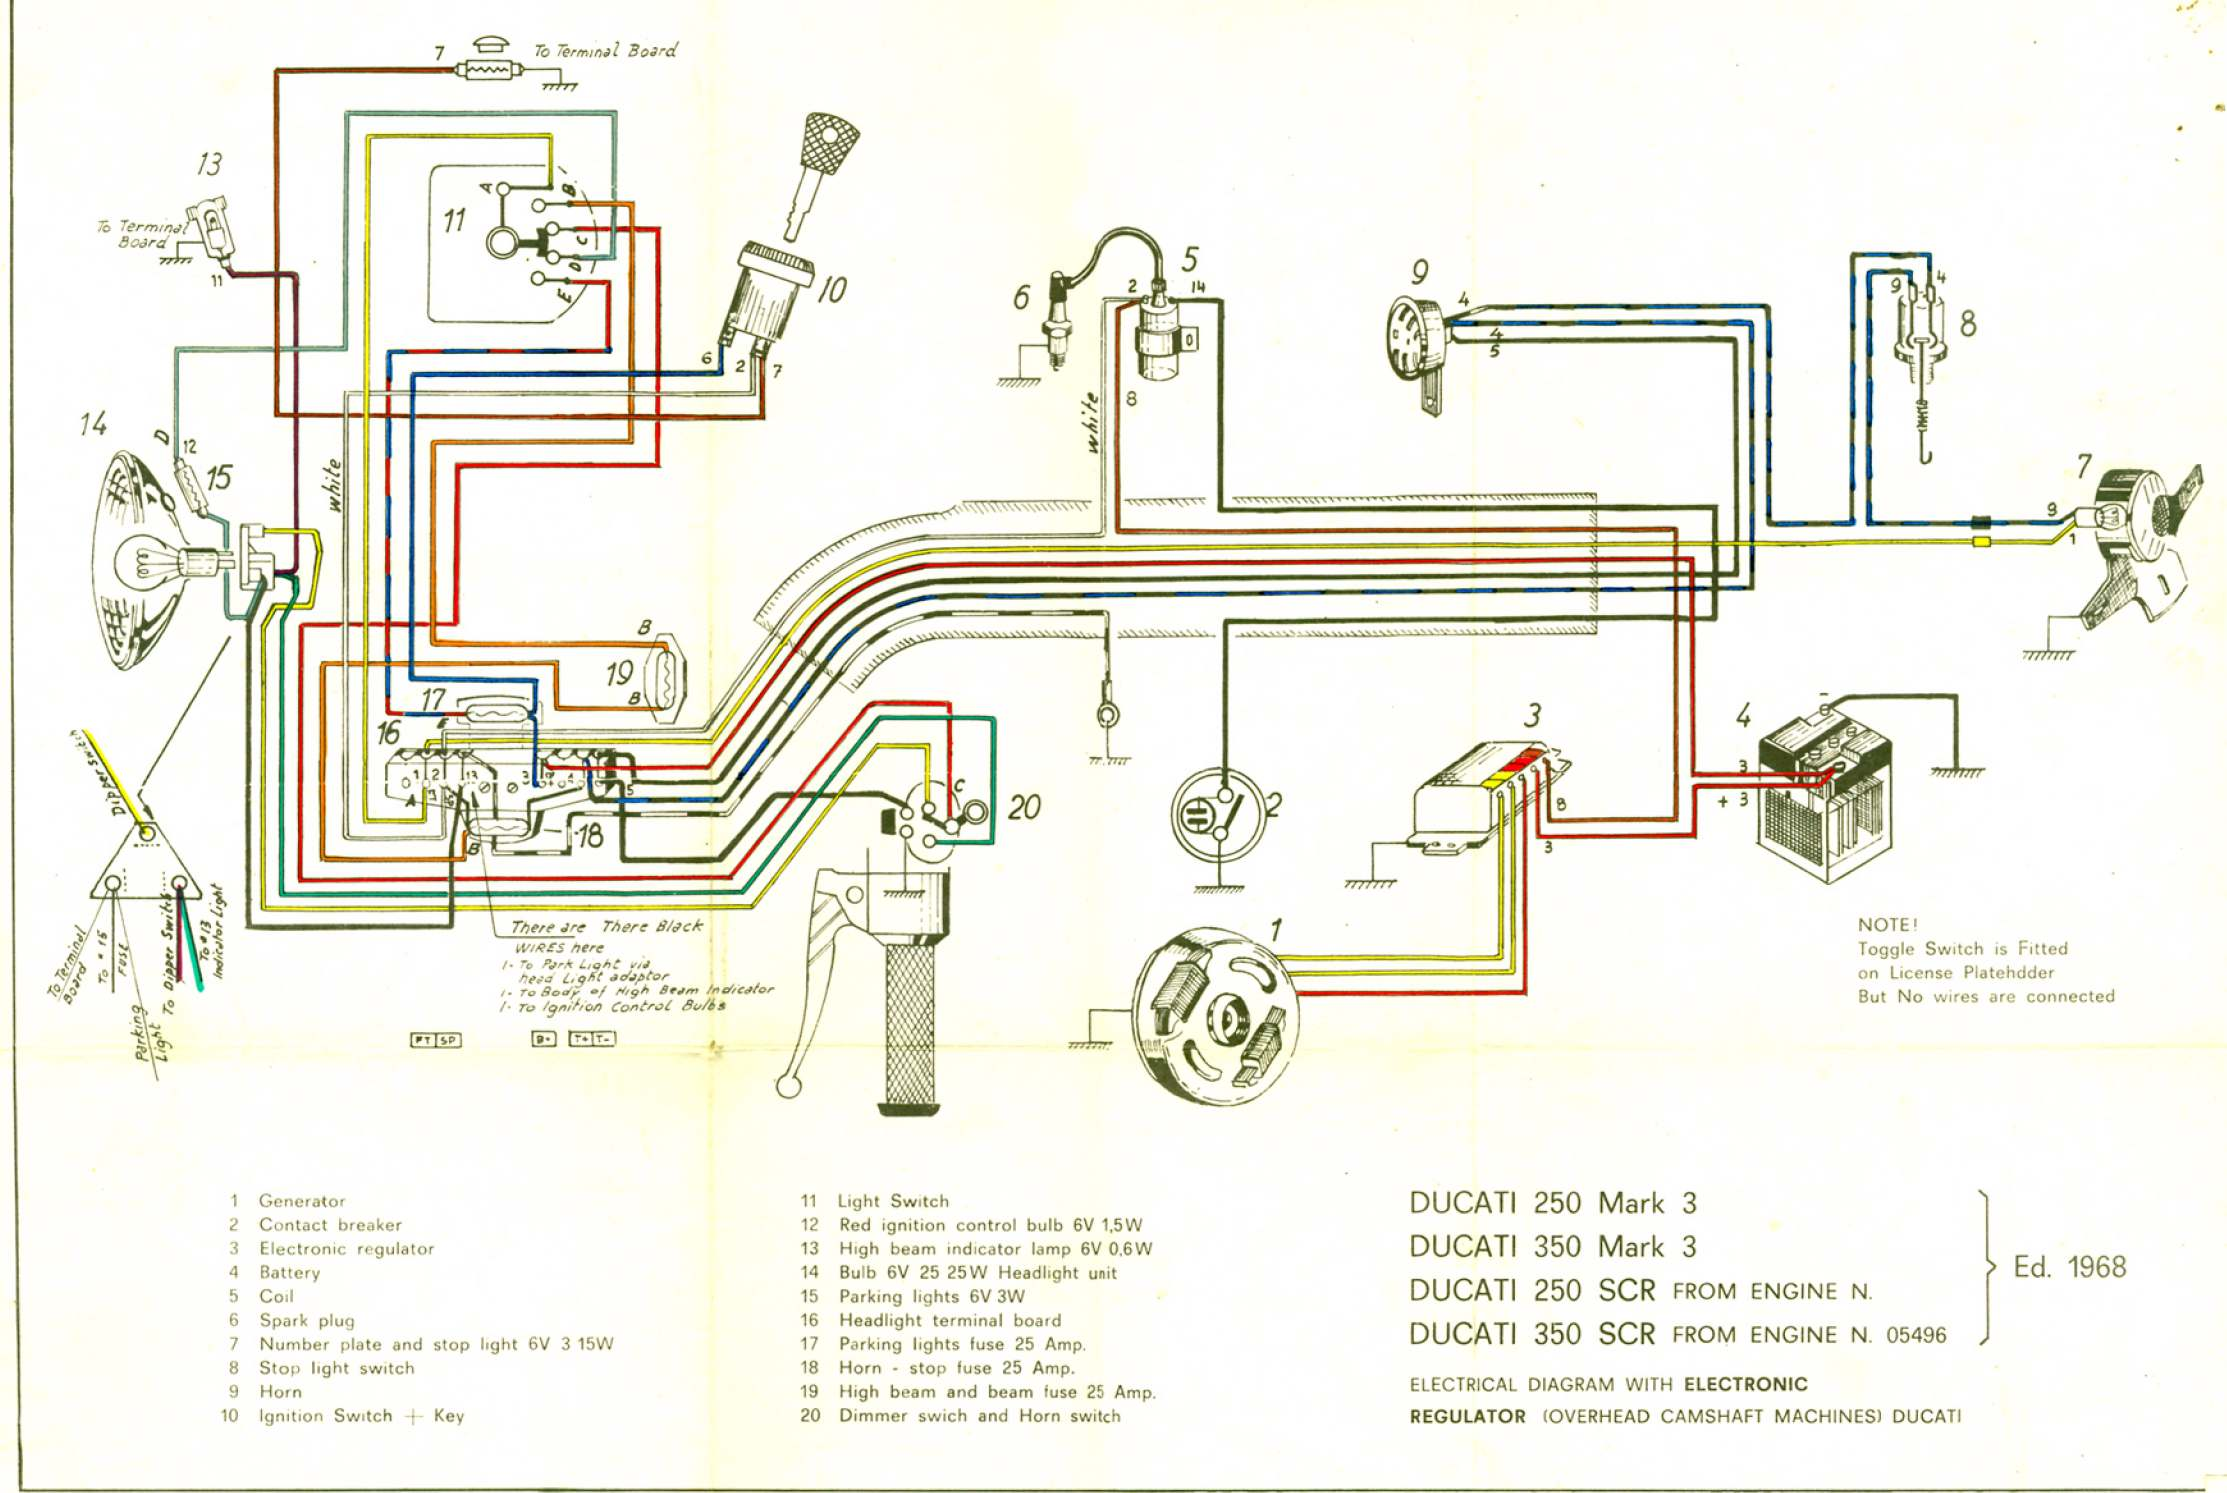 2003 Harley Davidson Sportster Wiring Diagram Dan S Motorcycle Quot Various Wiring Systems And Diagrams Quot